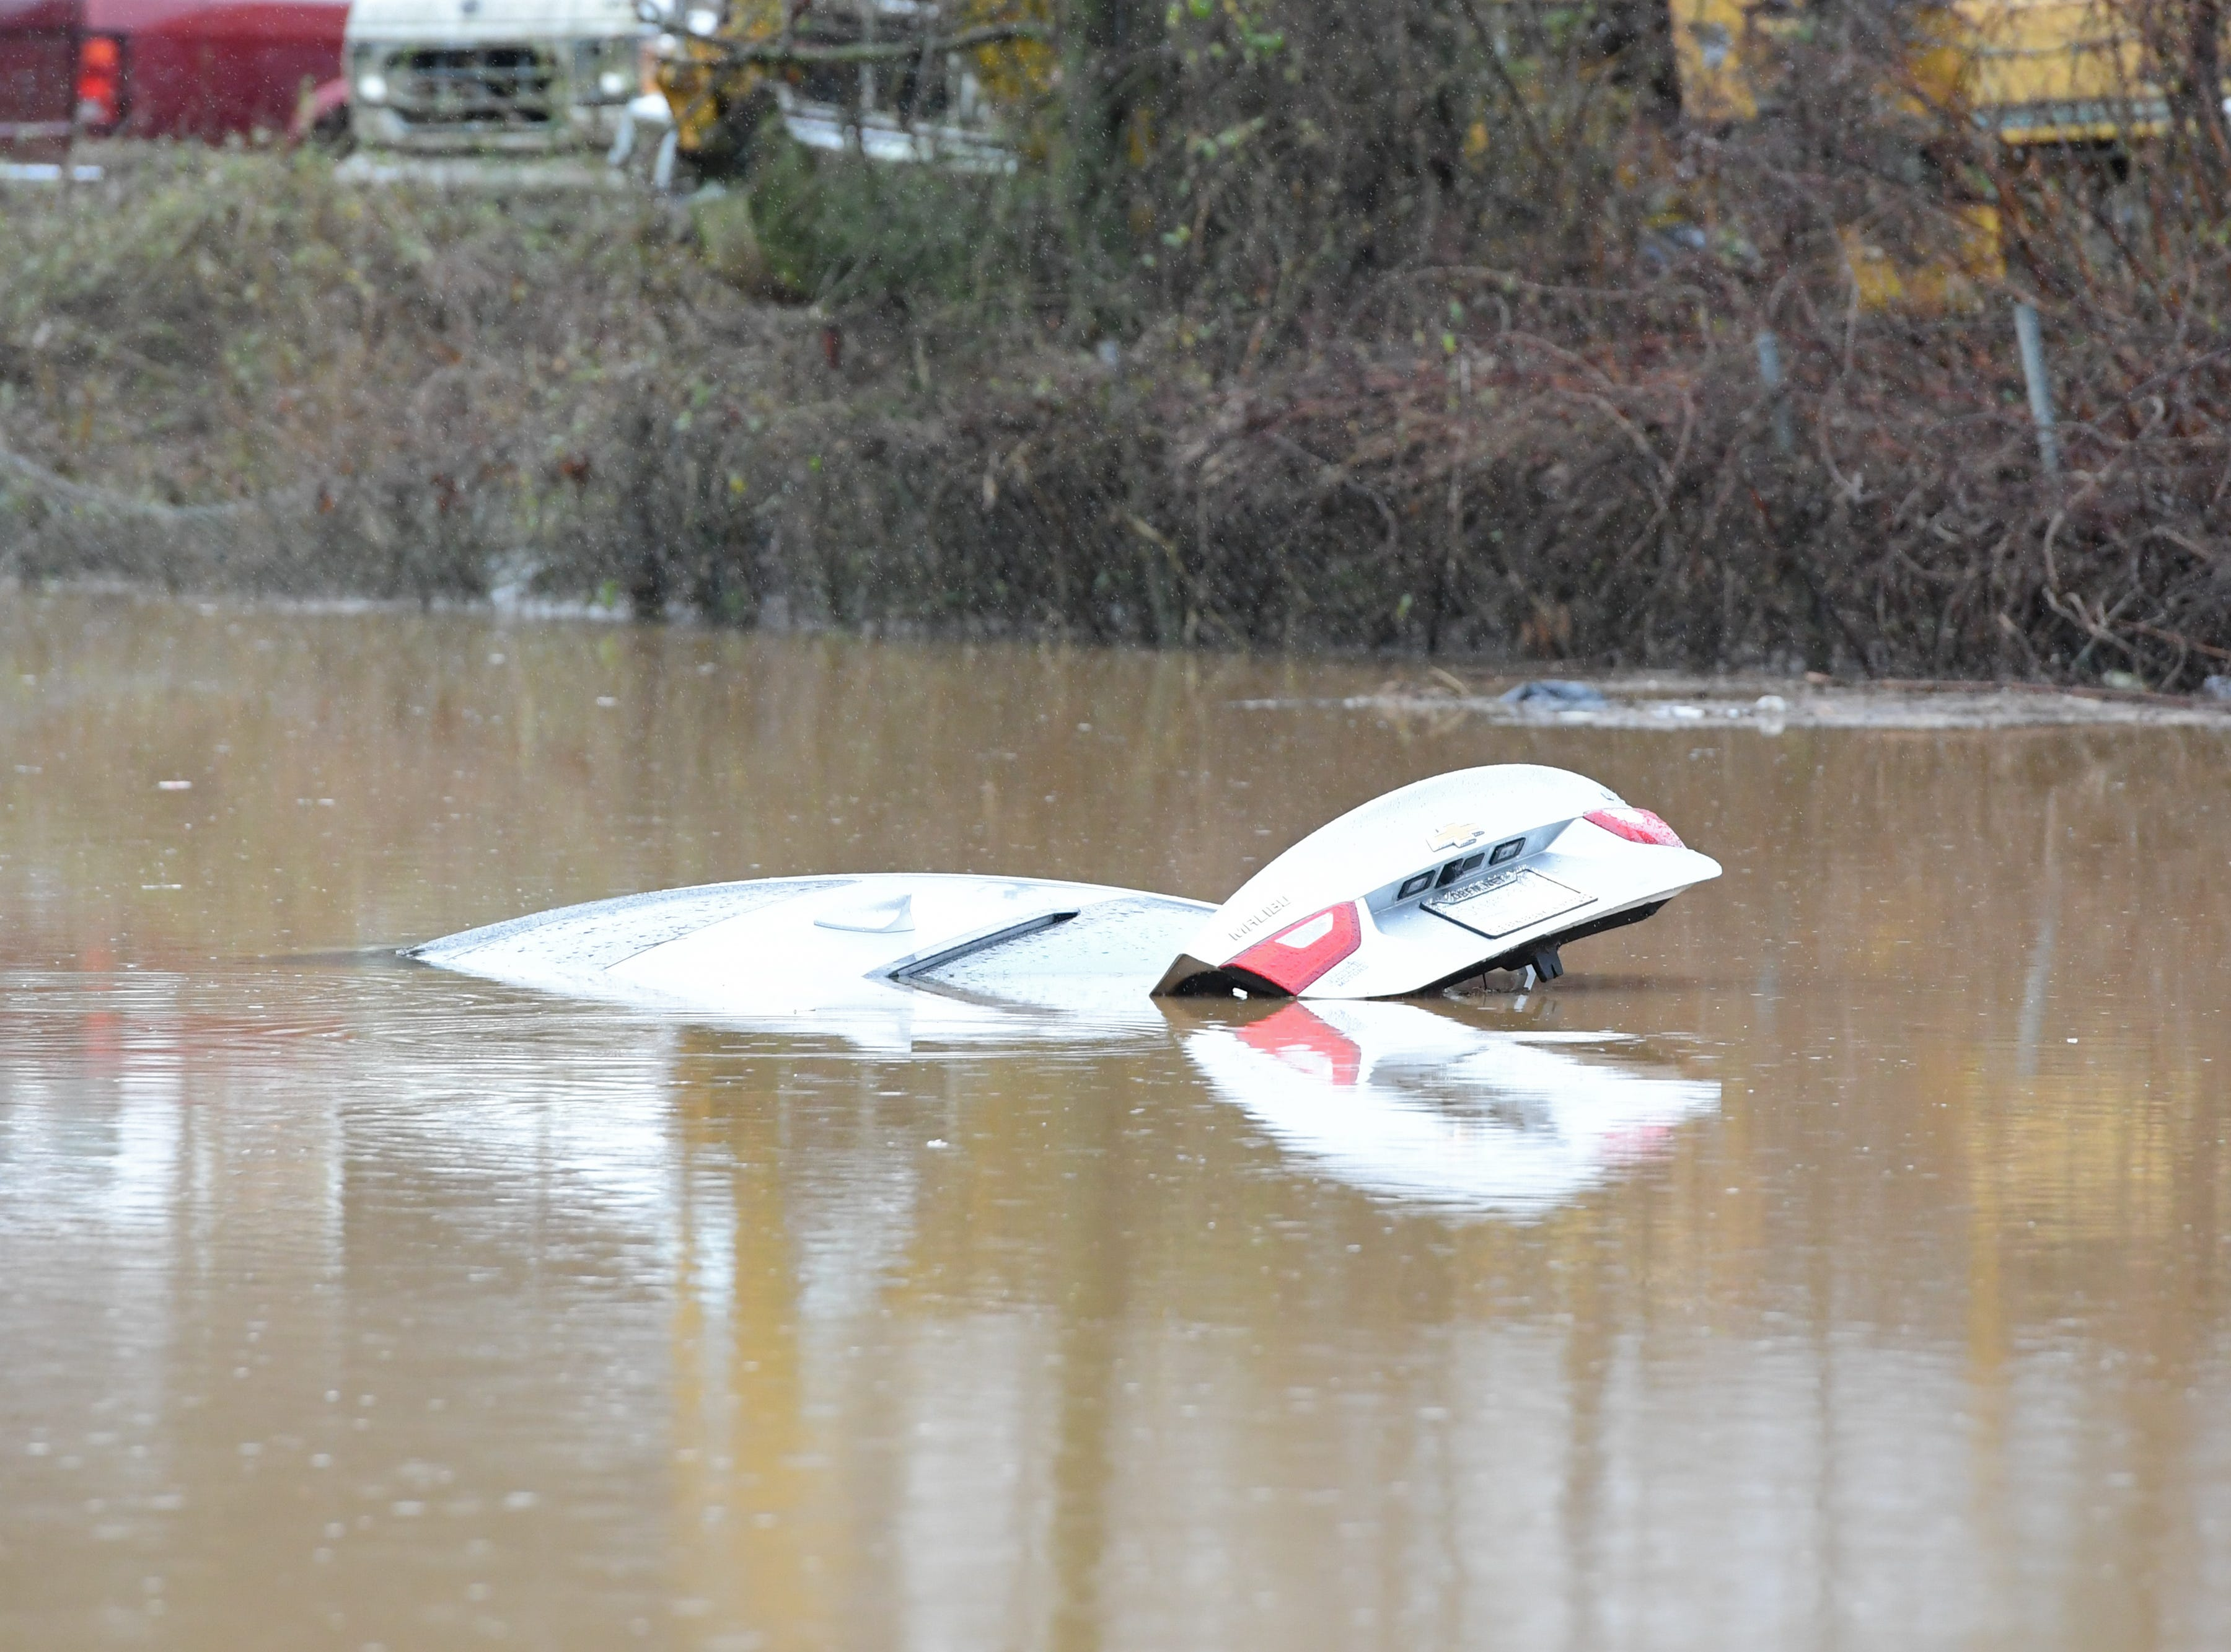 A car is submerged due to flooding at West Emory Road and Sharp Road in Powell Saturday Feb. 23, 2019. The Knoxville area could see between 2 and 3 inches of rain through the weekend.